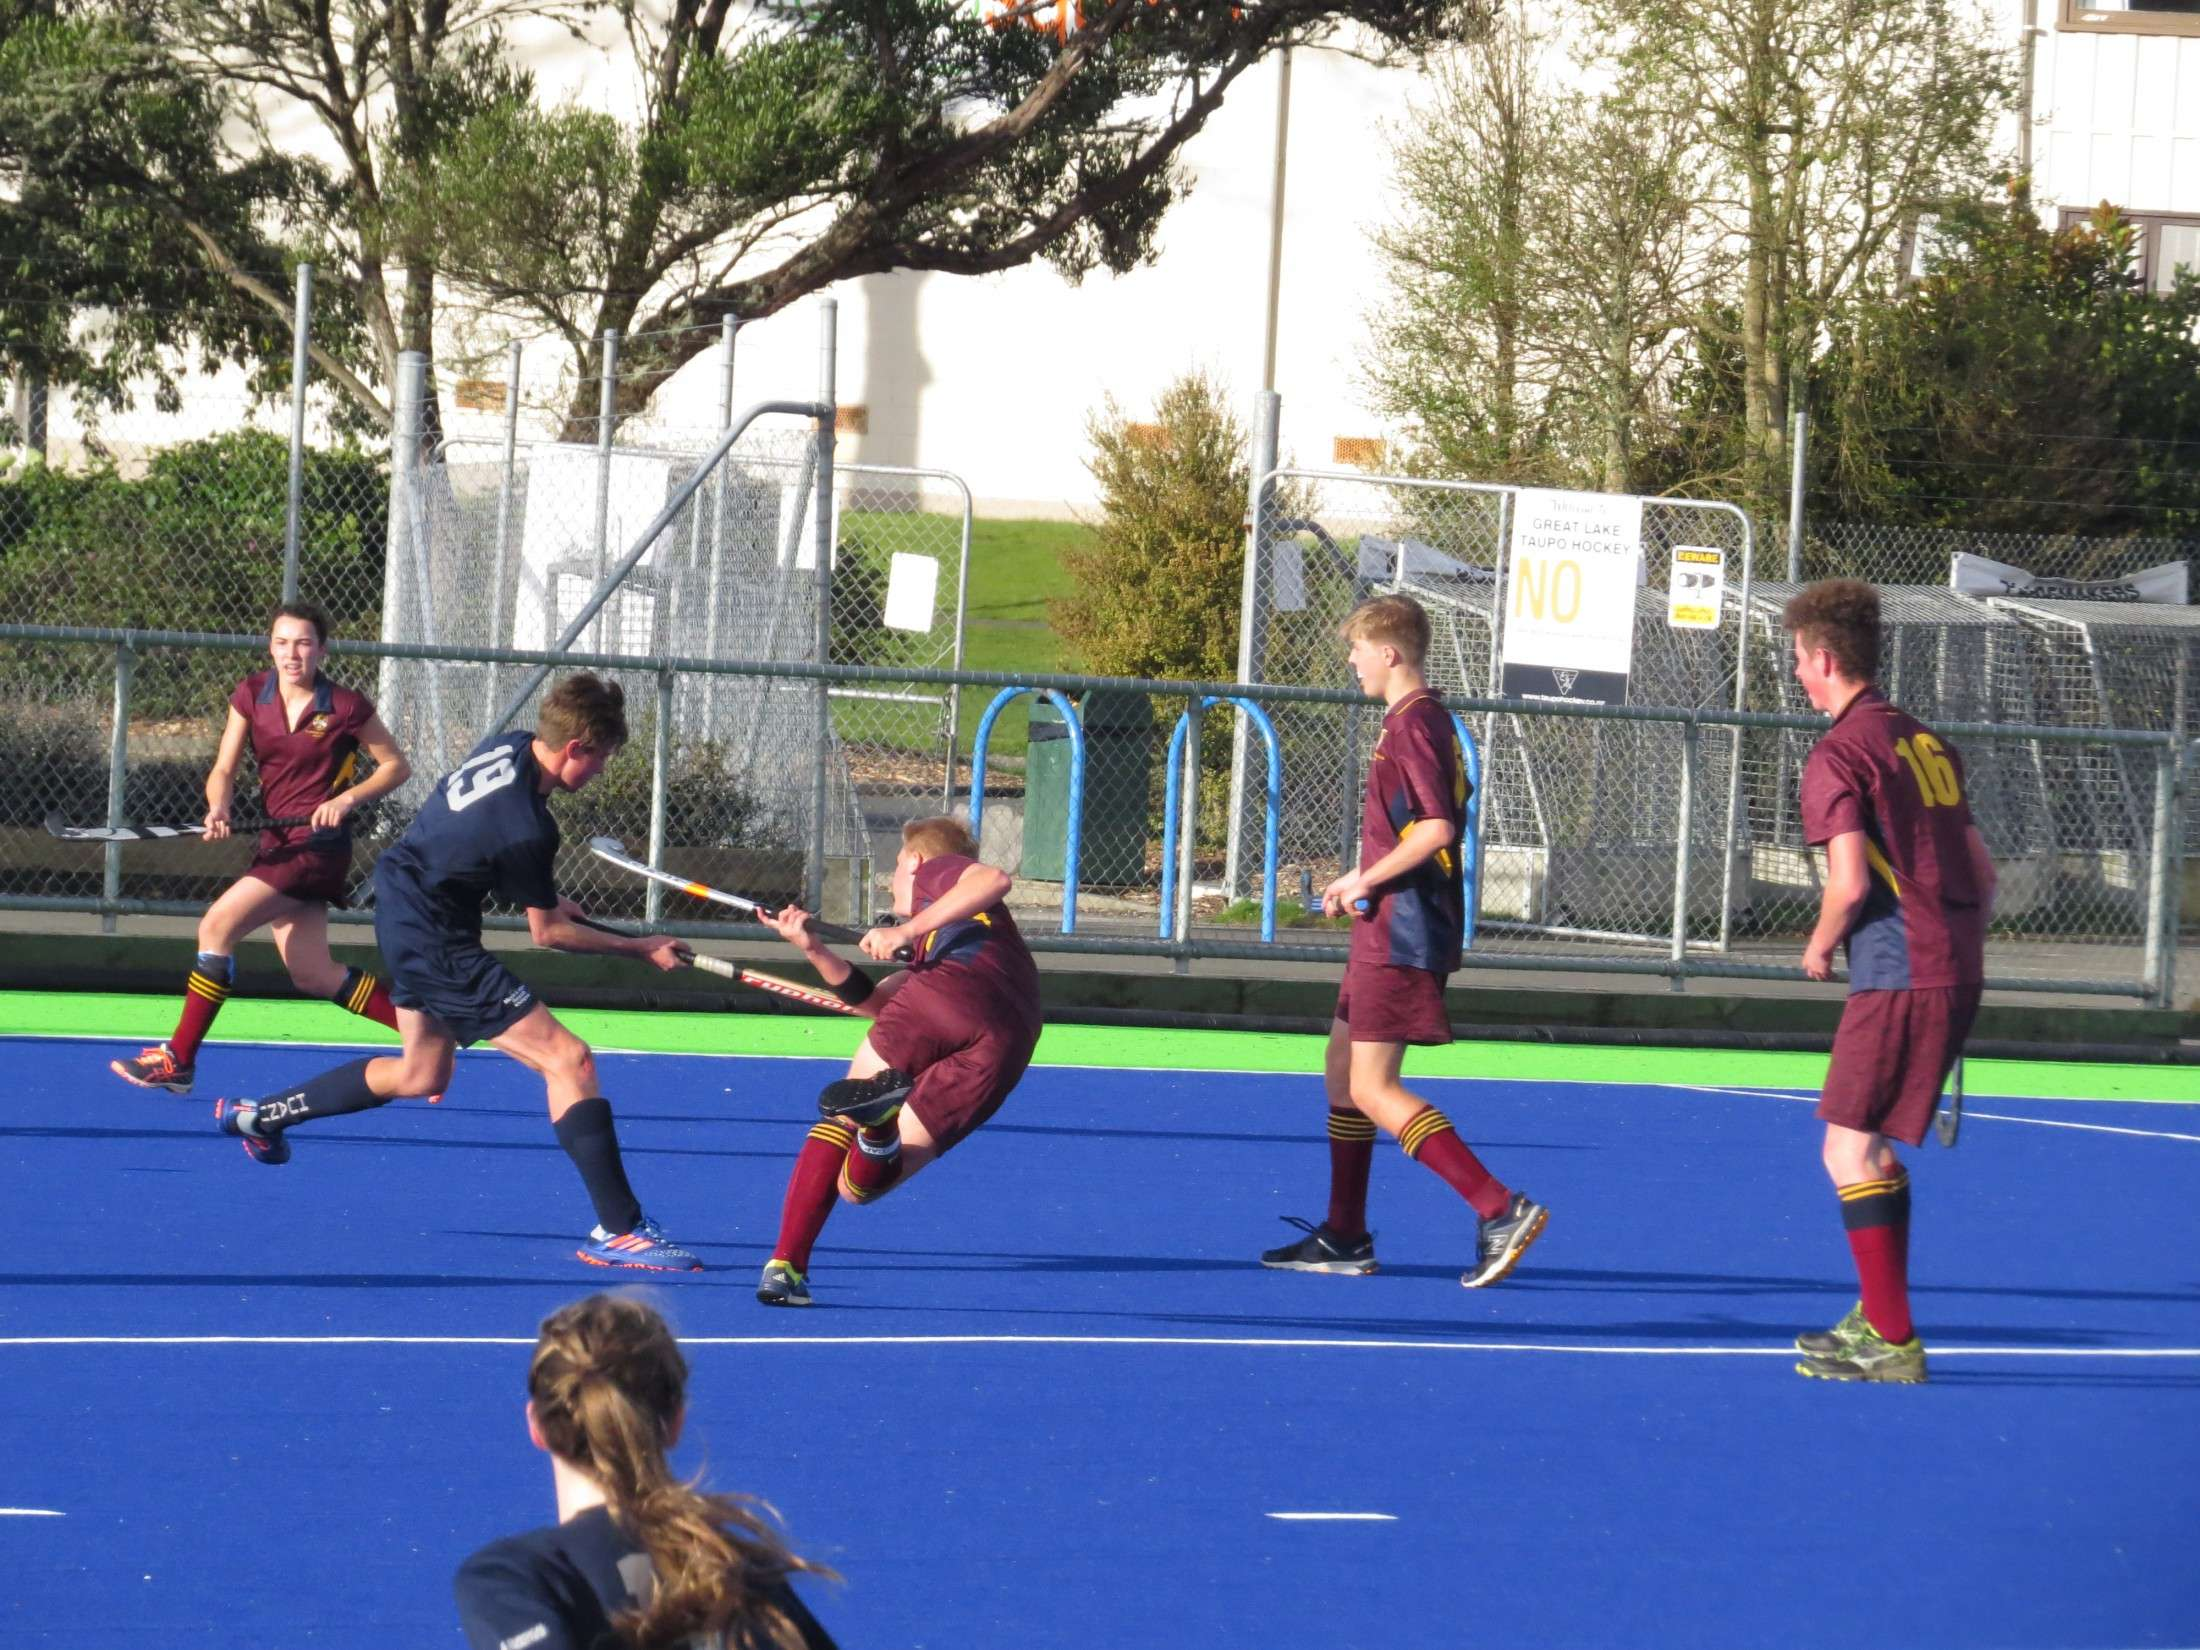 TE AROHA COLLEGE MIXED HOCKEY WINS SILVER AT NORTH ISLAND TOURNAMENT